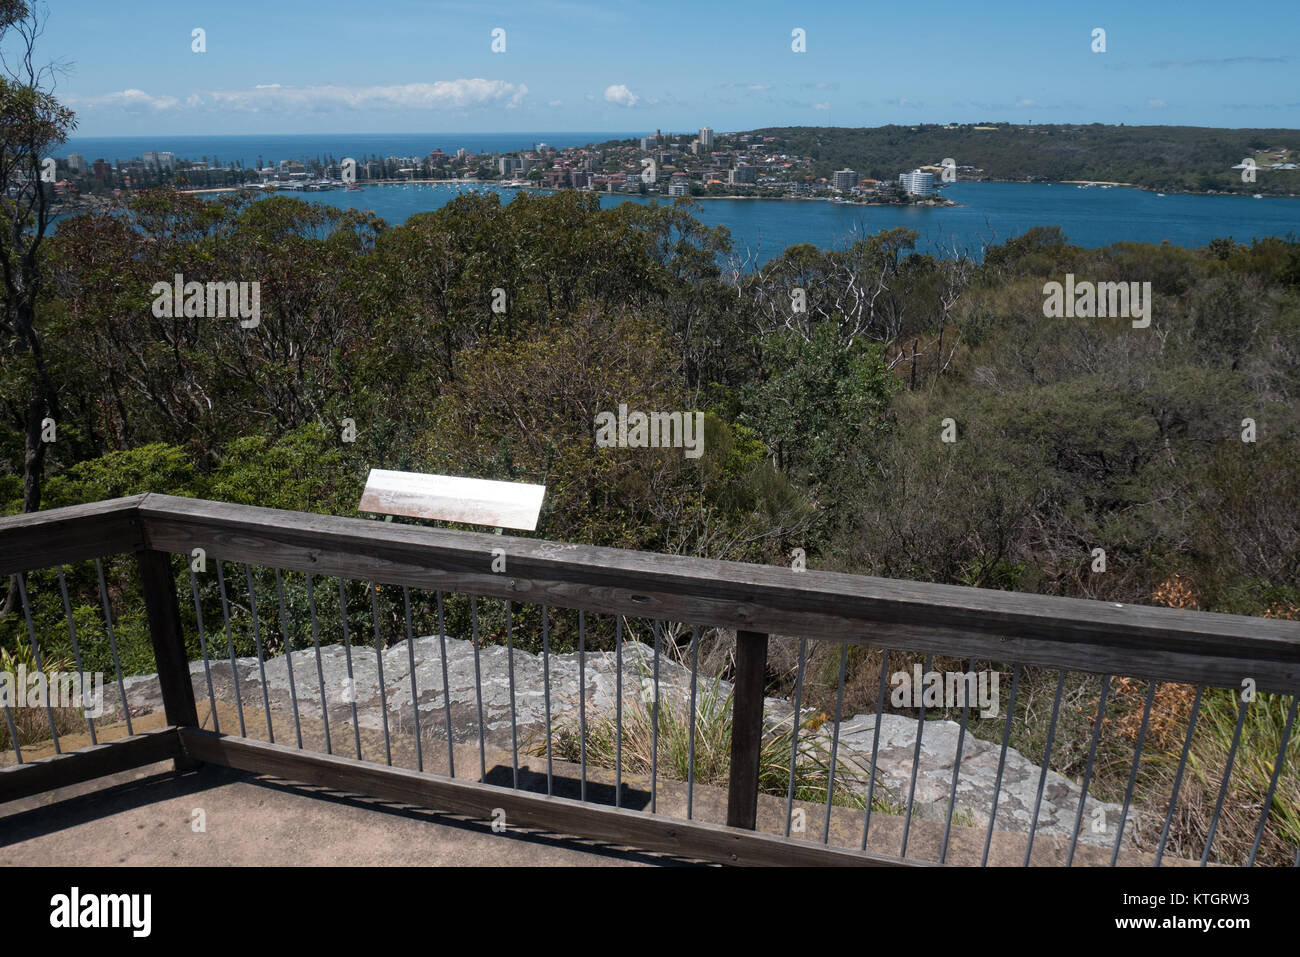 arabanoo outlook point in sydney - Stock Image